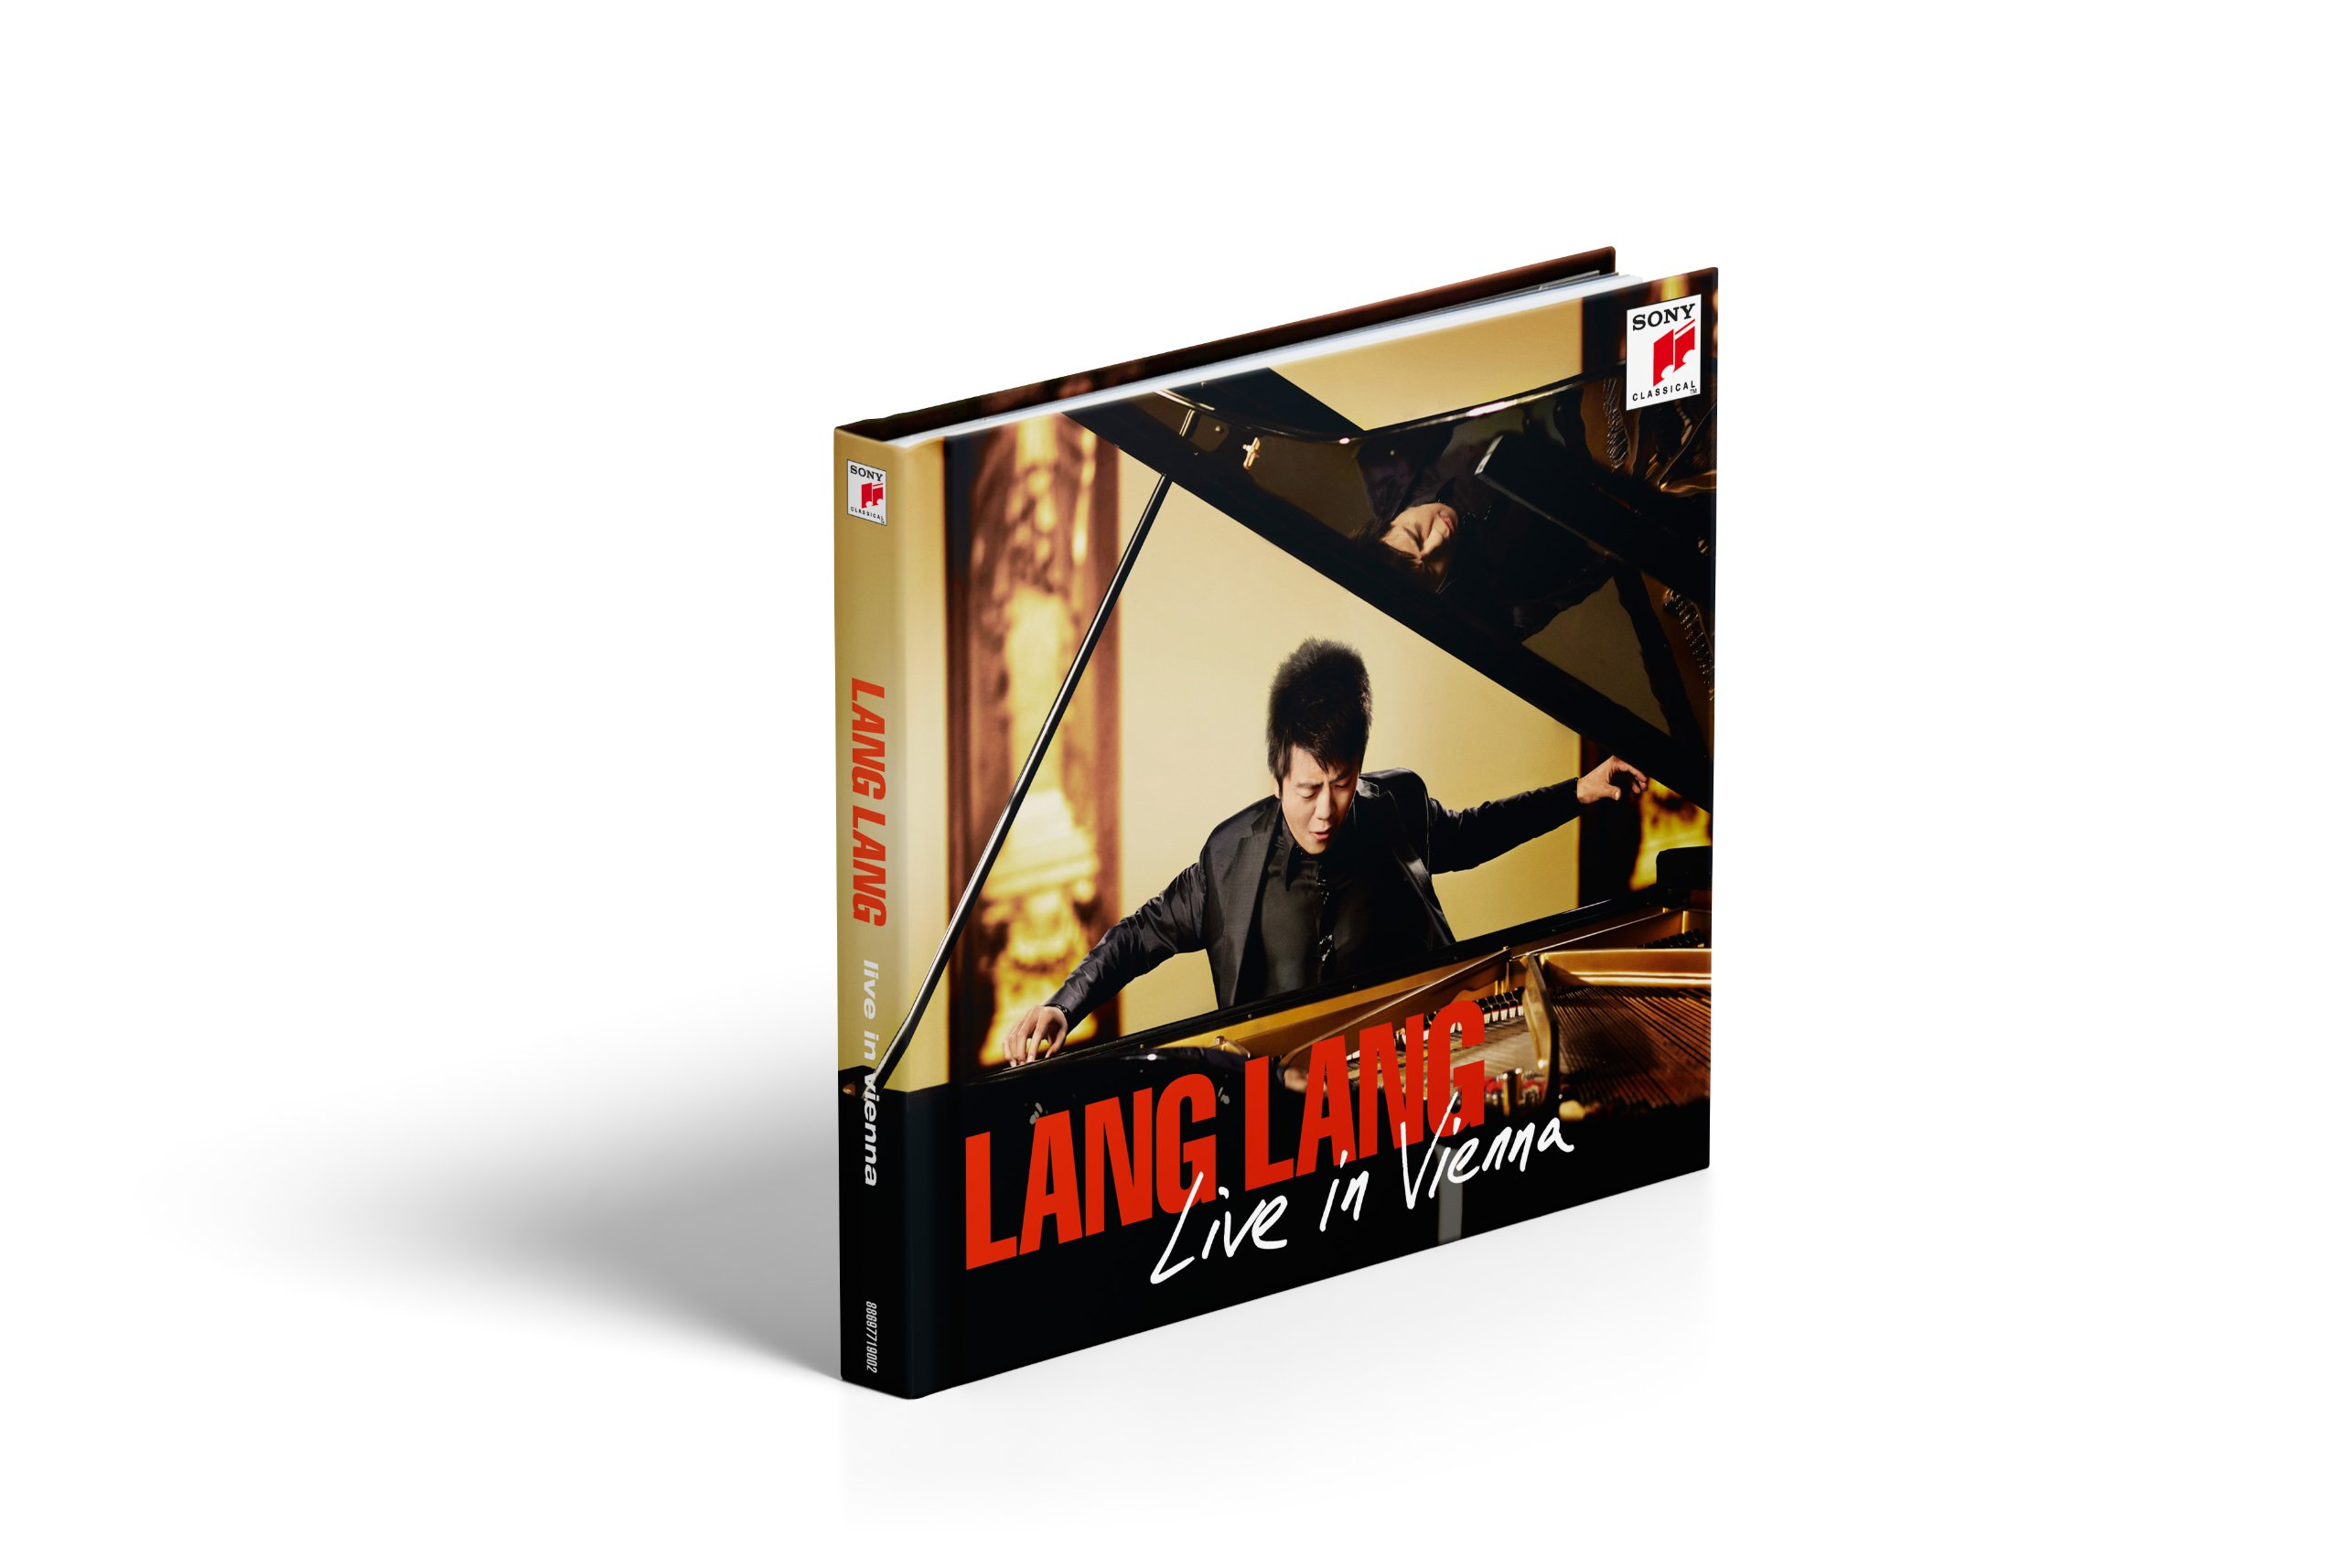 Lang Lang Live in Vienna (2 CD/ 1 DVD)